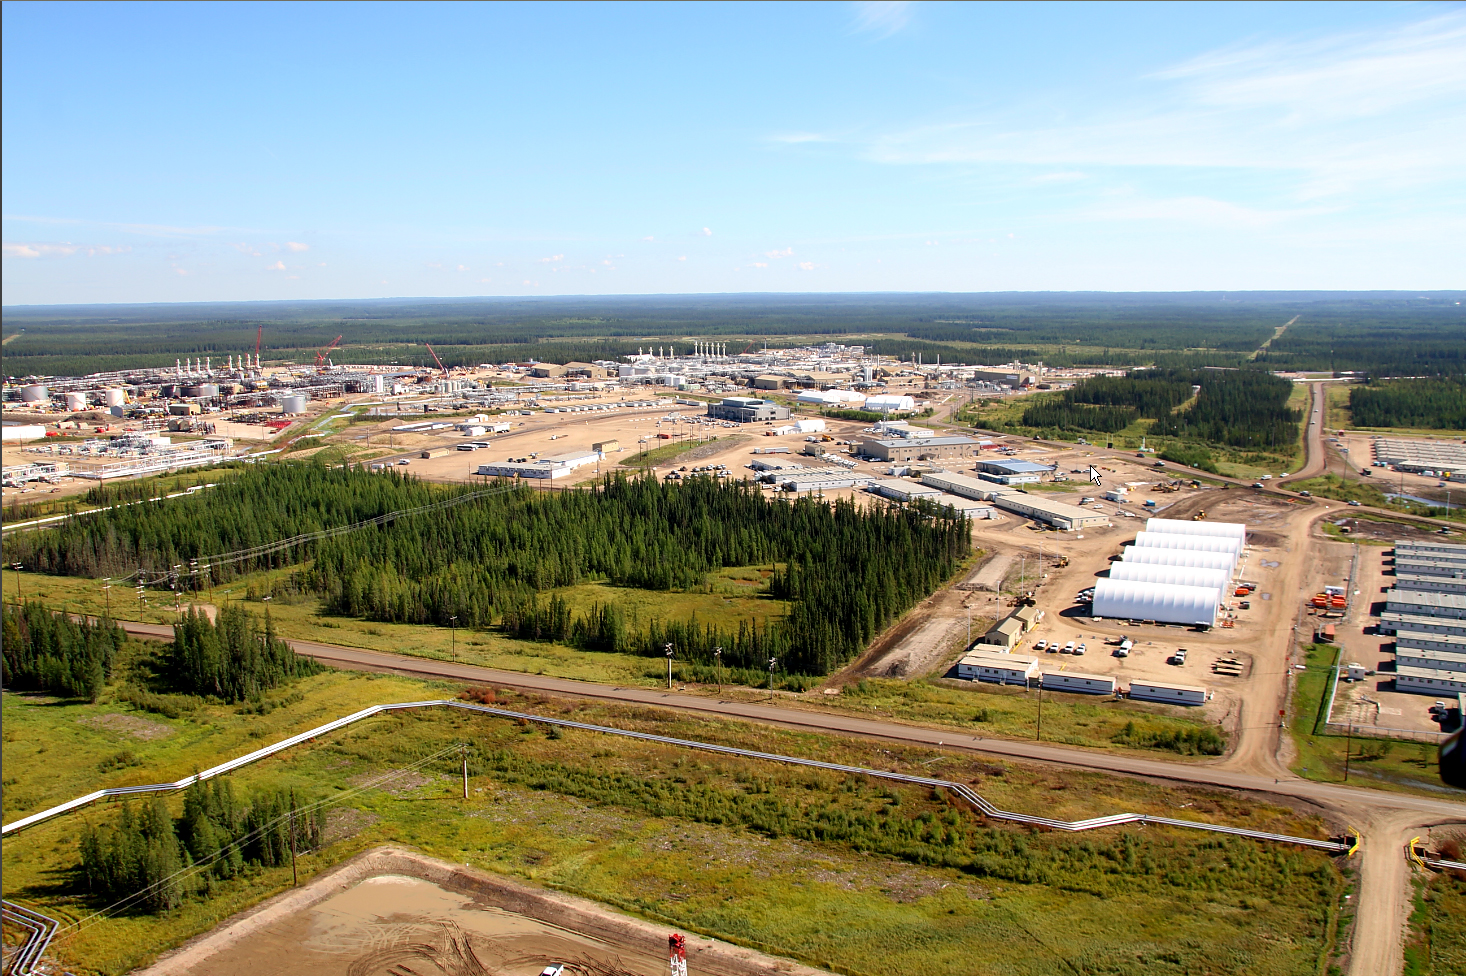 Cenovus Foster Creek Oil Sands Project